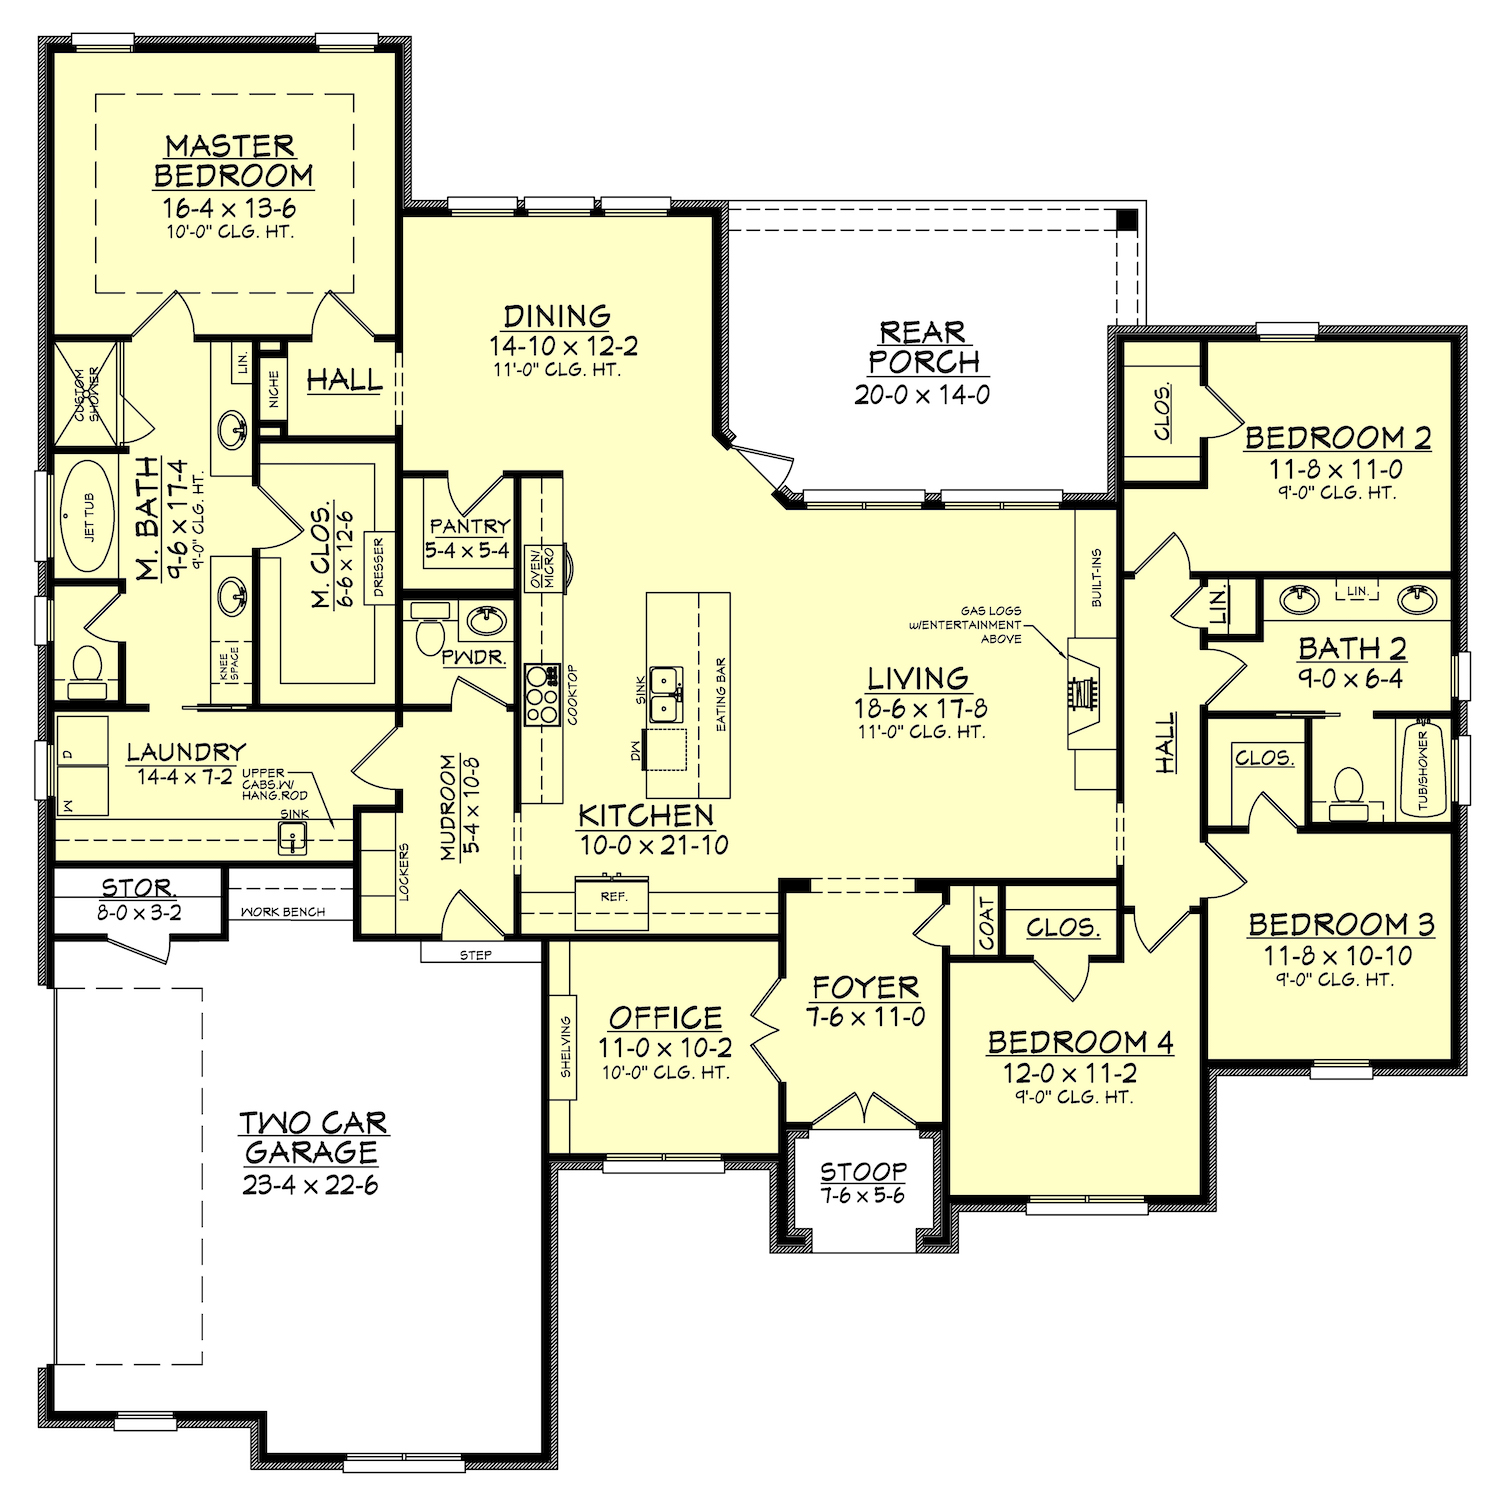 Home Design Ideas Floor Plans: 4 Bedrm, 2506 Sq Ft European House Plan #142-1162